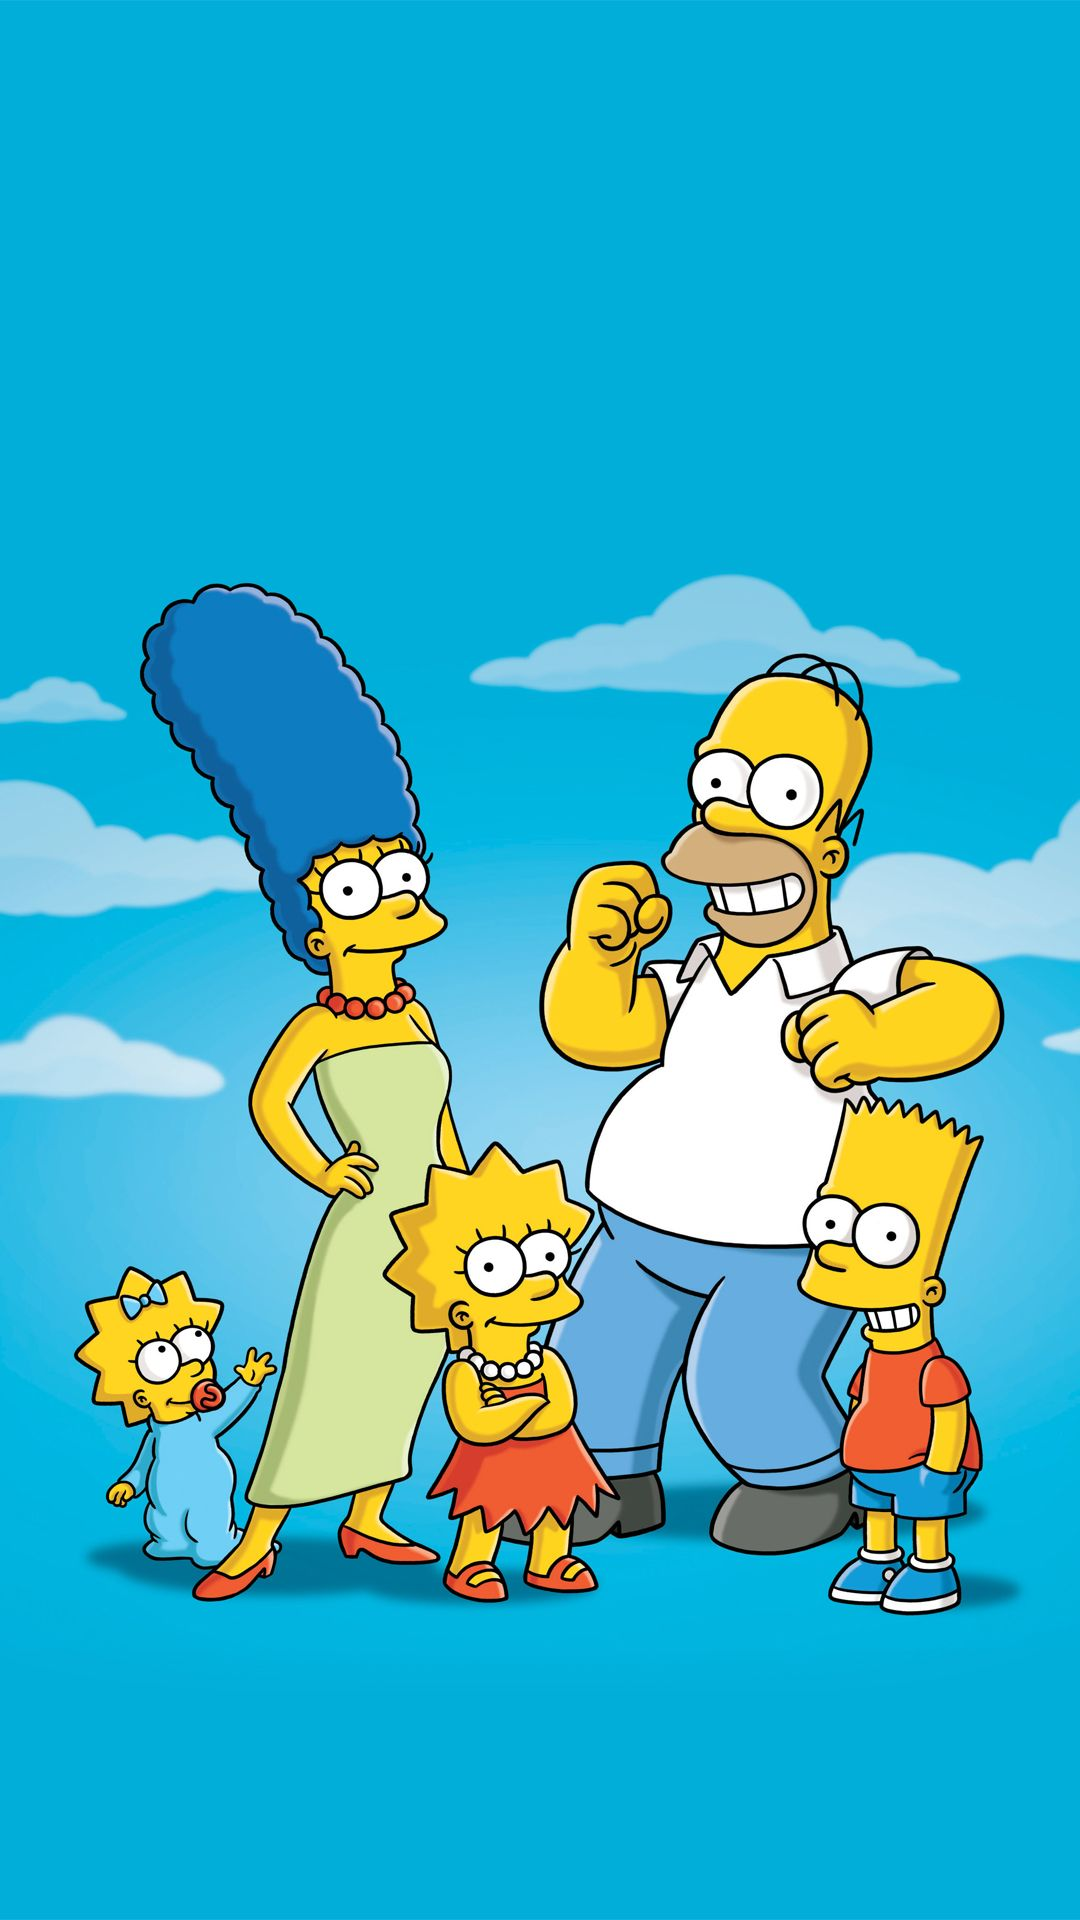 Wallpaper iphone simpsons - The Simpsons Family Funny Hd Wallpapers For Iphone 6 Is A Fantastic Hd Wallpaper For Your Pc Or Mac And Is Available In High Definition Resolution